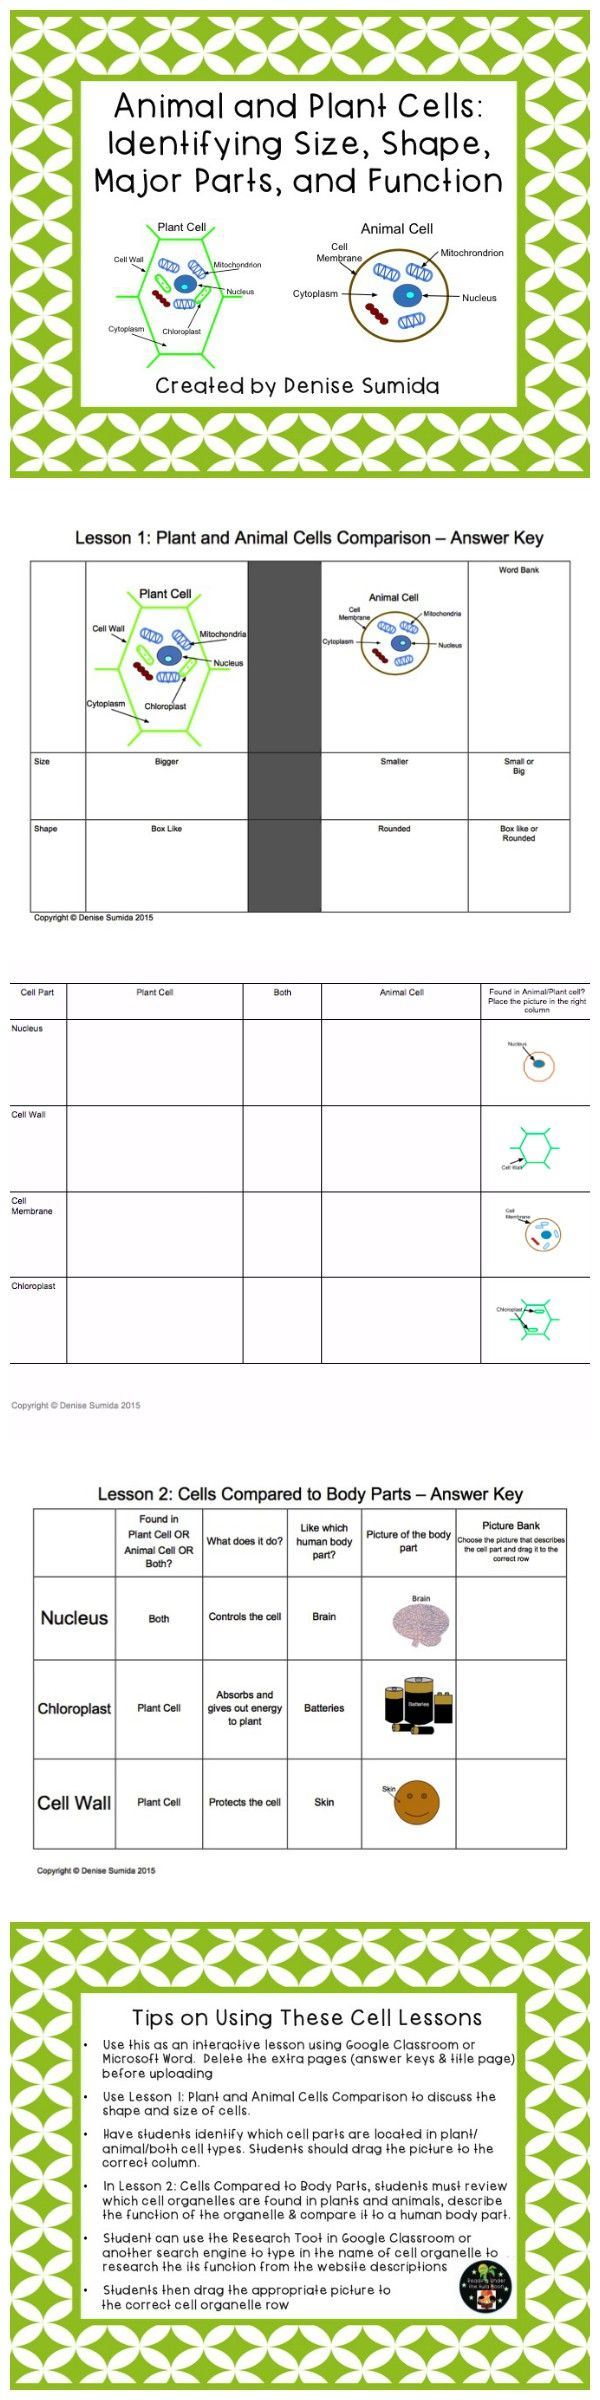 Cell review worksheet answers